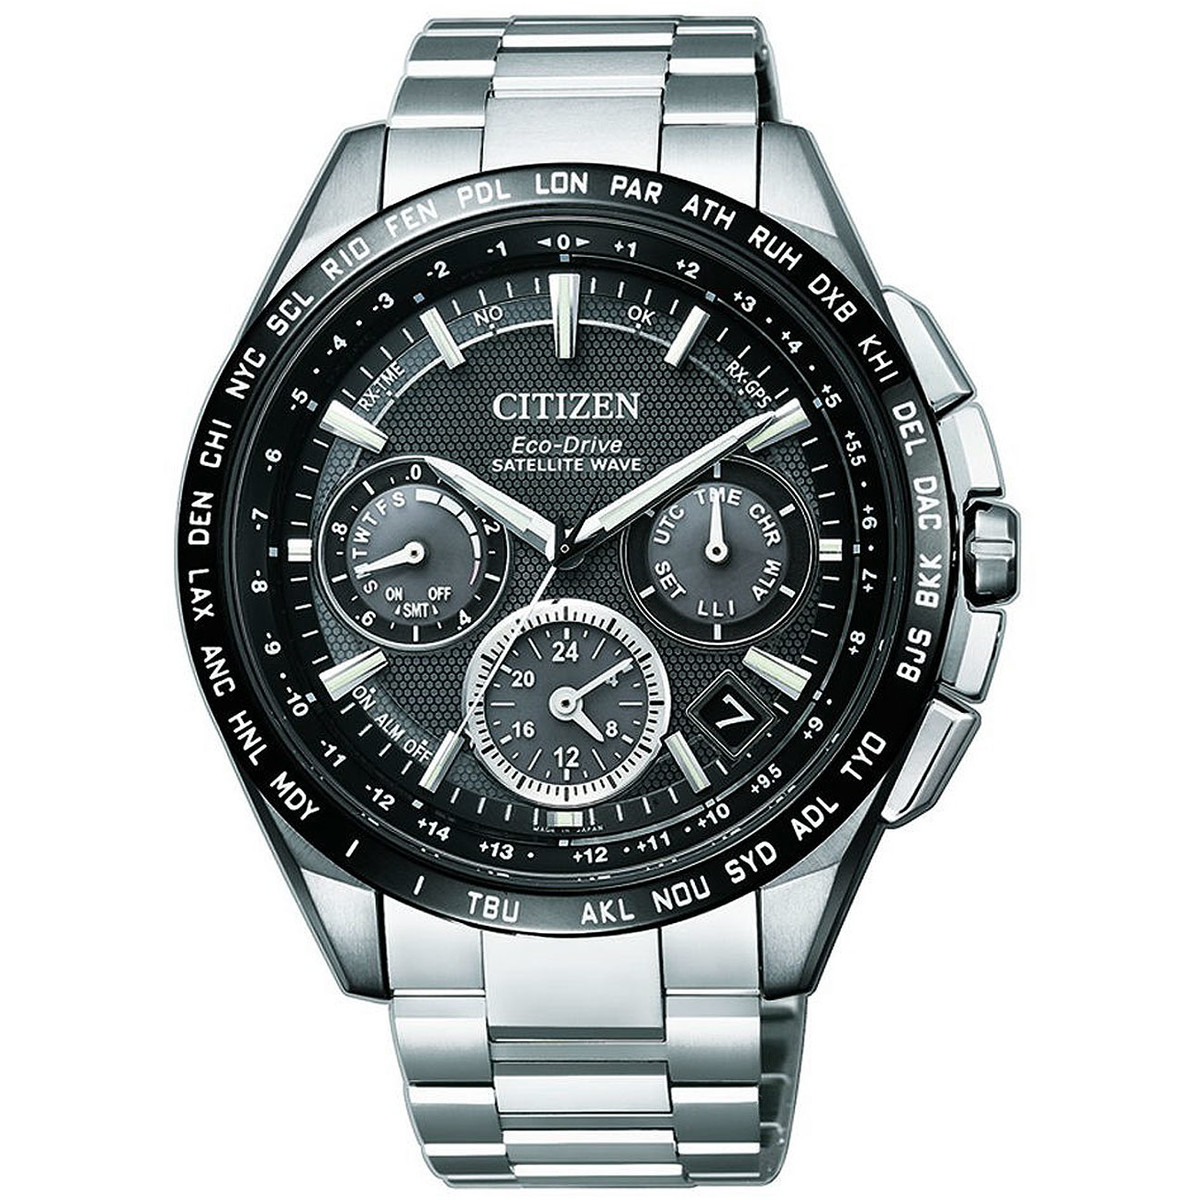 Ceas barbatesc Citizen Satellite Wave CC9015-54E original de mana